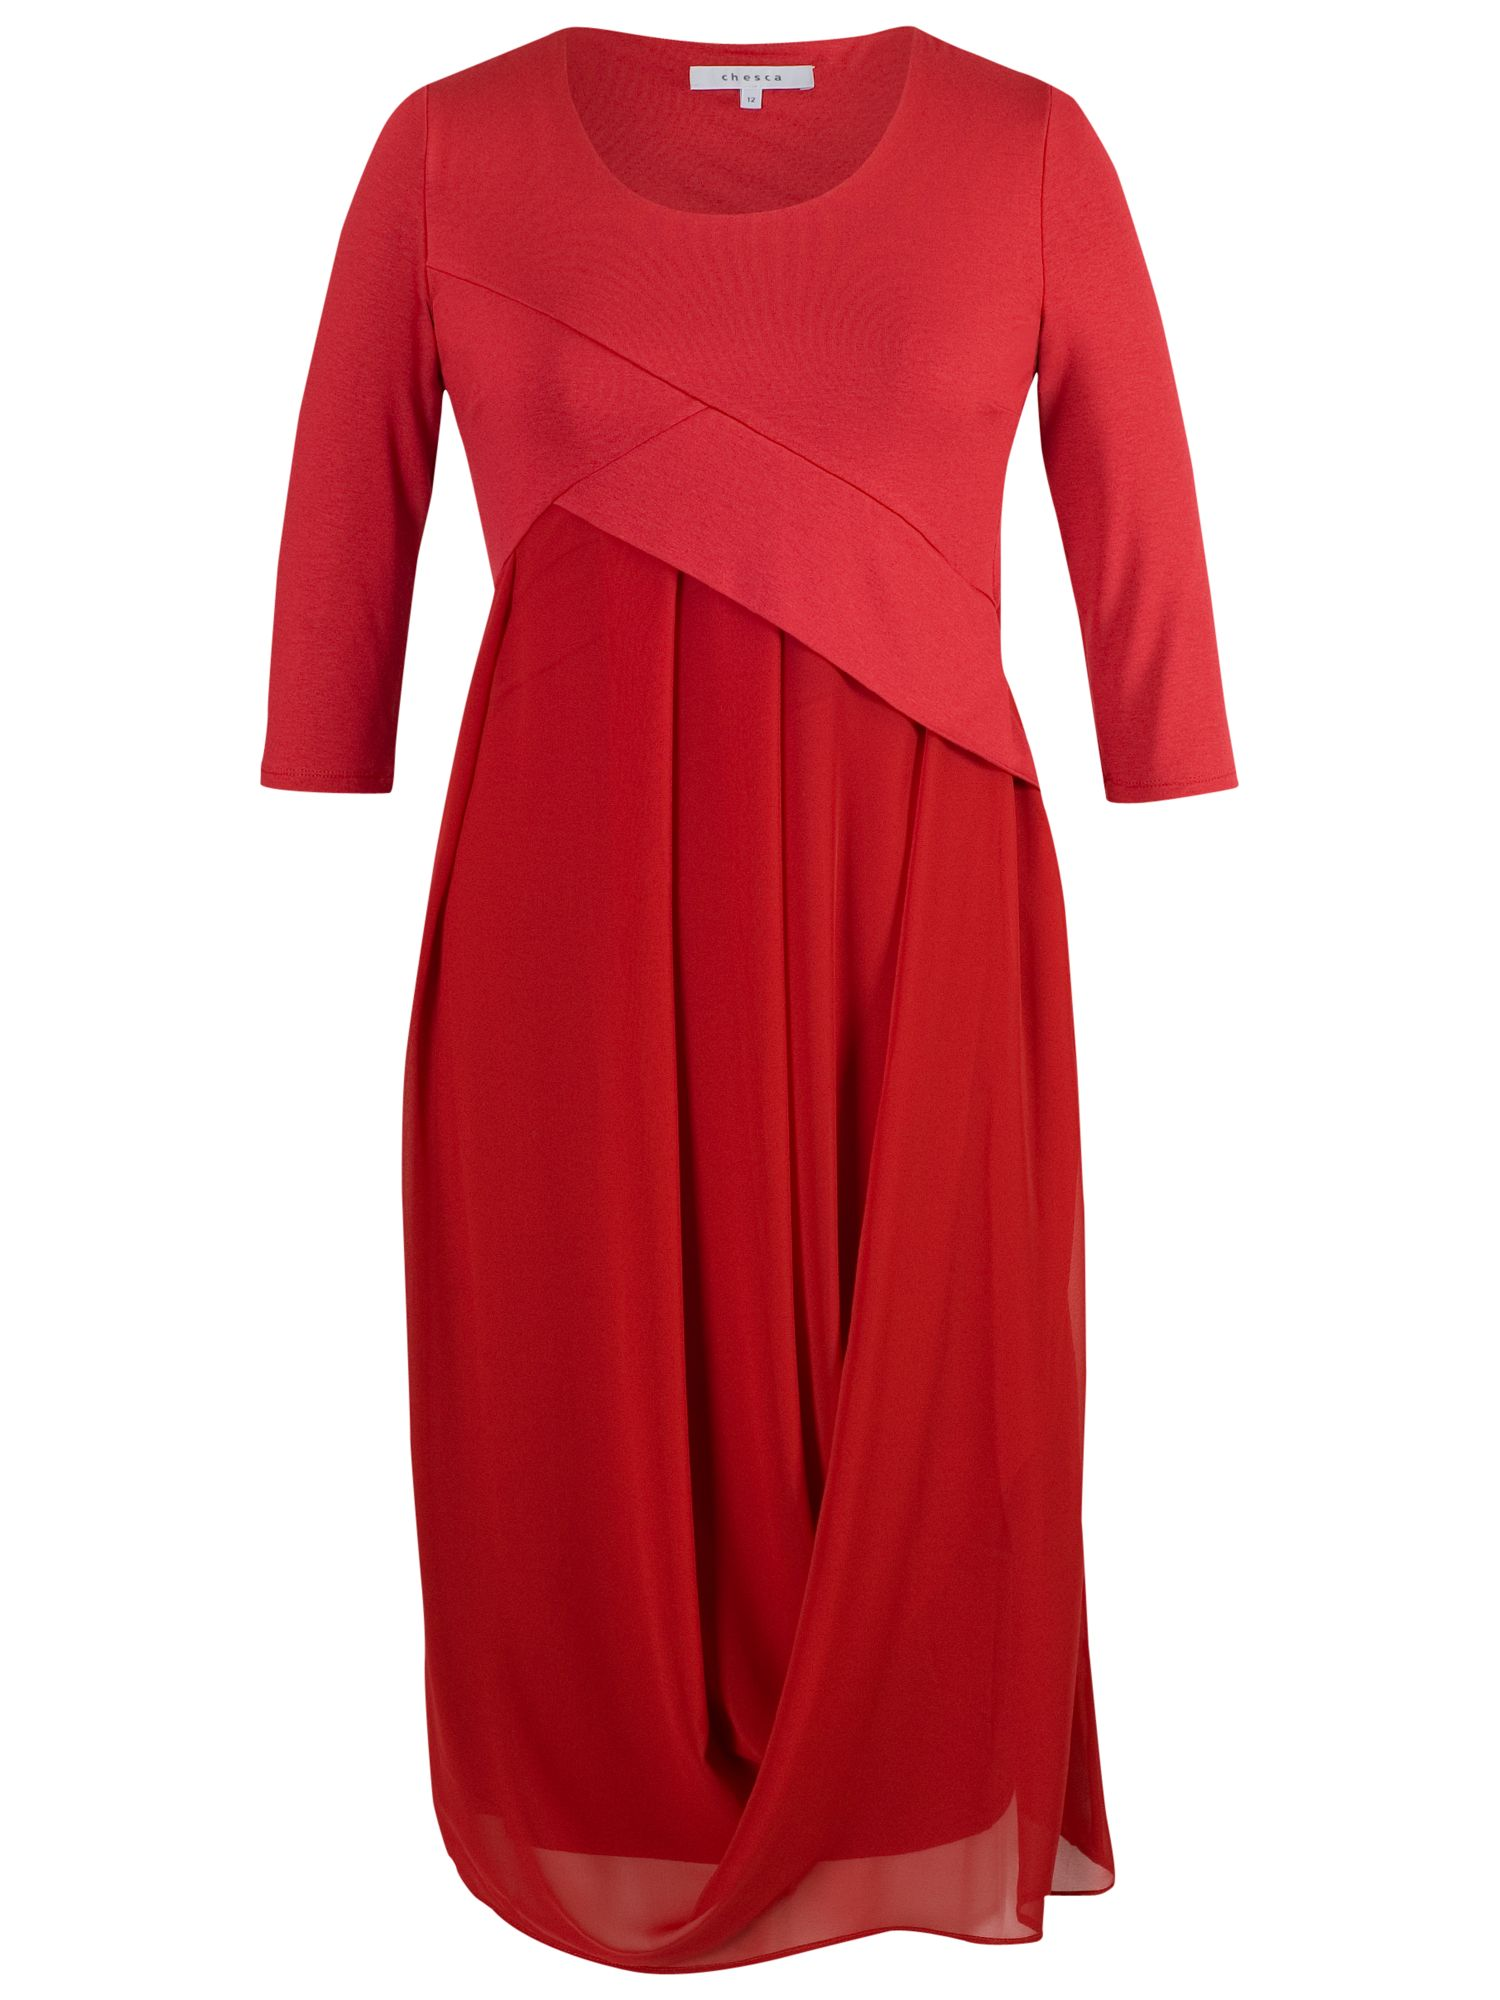 chesca jersey/chiffon 3/4 sleeves dress red, chesca, jersey/chiffon, 3/4, sleeves, dress, red, 18|22|20|16|14|12, women, plus size, womens dresses, gifts, valentines day, red dress, 1655851